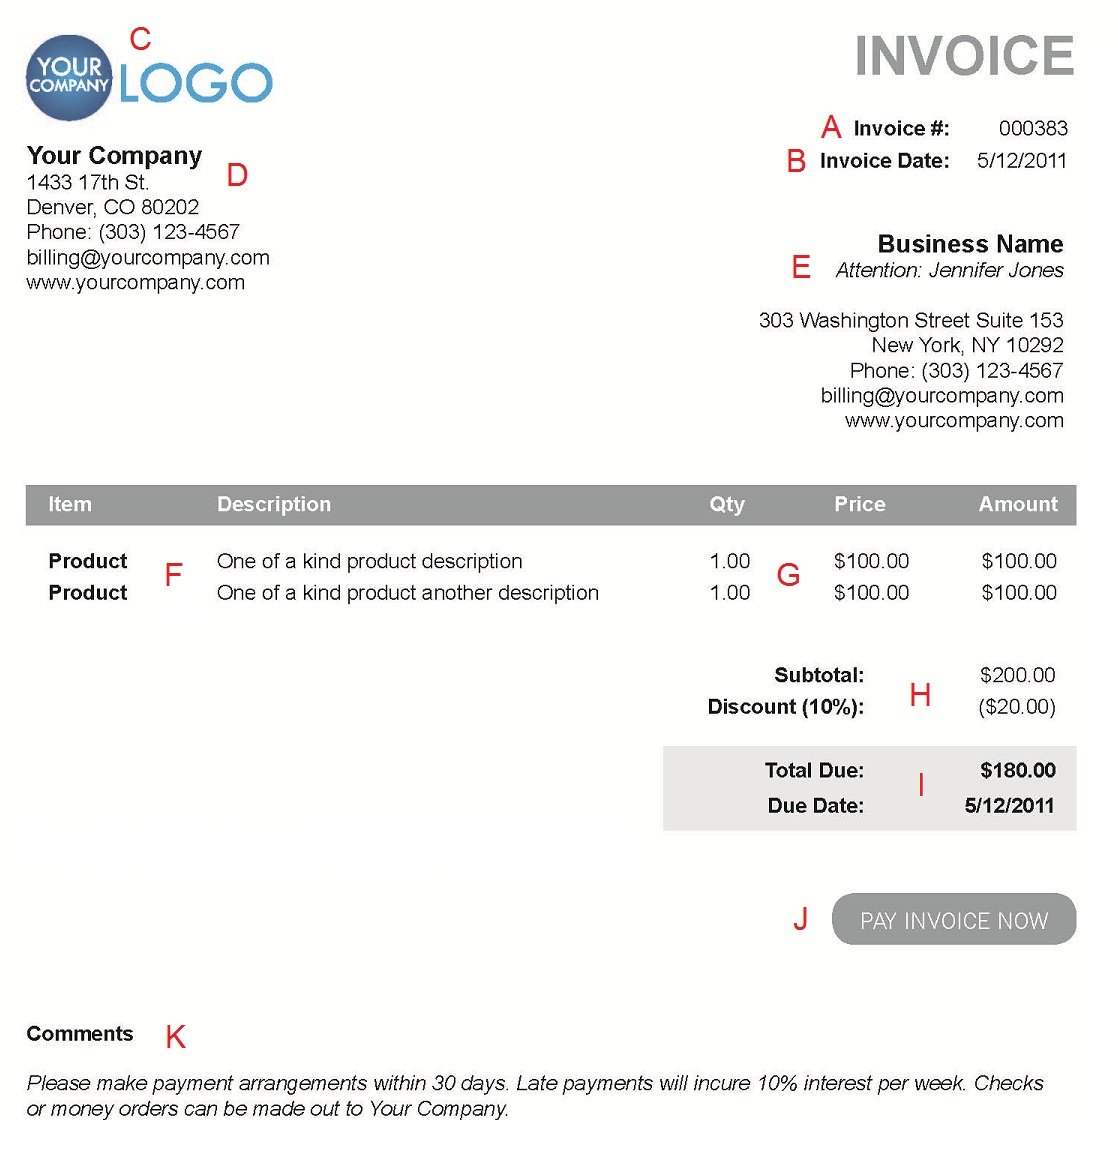 Carsforlessus  Nice The  Different Sections Of An Electronic Payment Invoice With Exquisite A  With Captivating Online Receipt Template Free Also Best Receipts Scanner In Addition Sample Car Sale Receipt And Hand Delivery Receipt As Well As Mate Receipt Additionally Duplicate Receipt Book Personalised From Paysimplecom With Carsforlessus  Exquisite The  Different Sections Of An Electronic Payment Invoice With Captivating A  And Nice Online Receipt Template Free Also Best Receipts Scanner In Addition Sample Car Sale Receipt From Paysimplecom